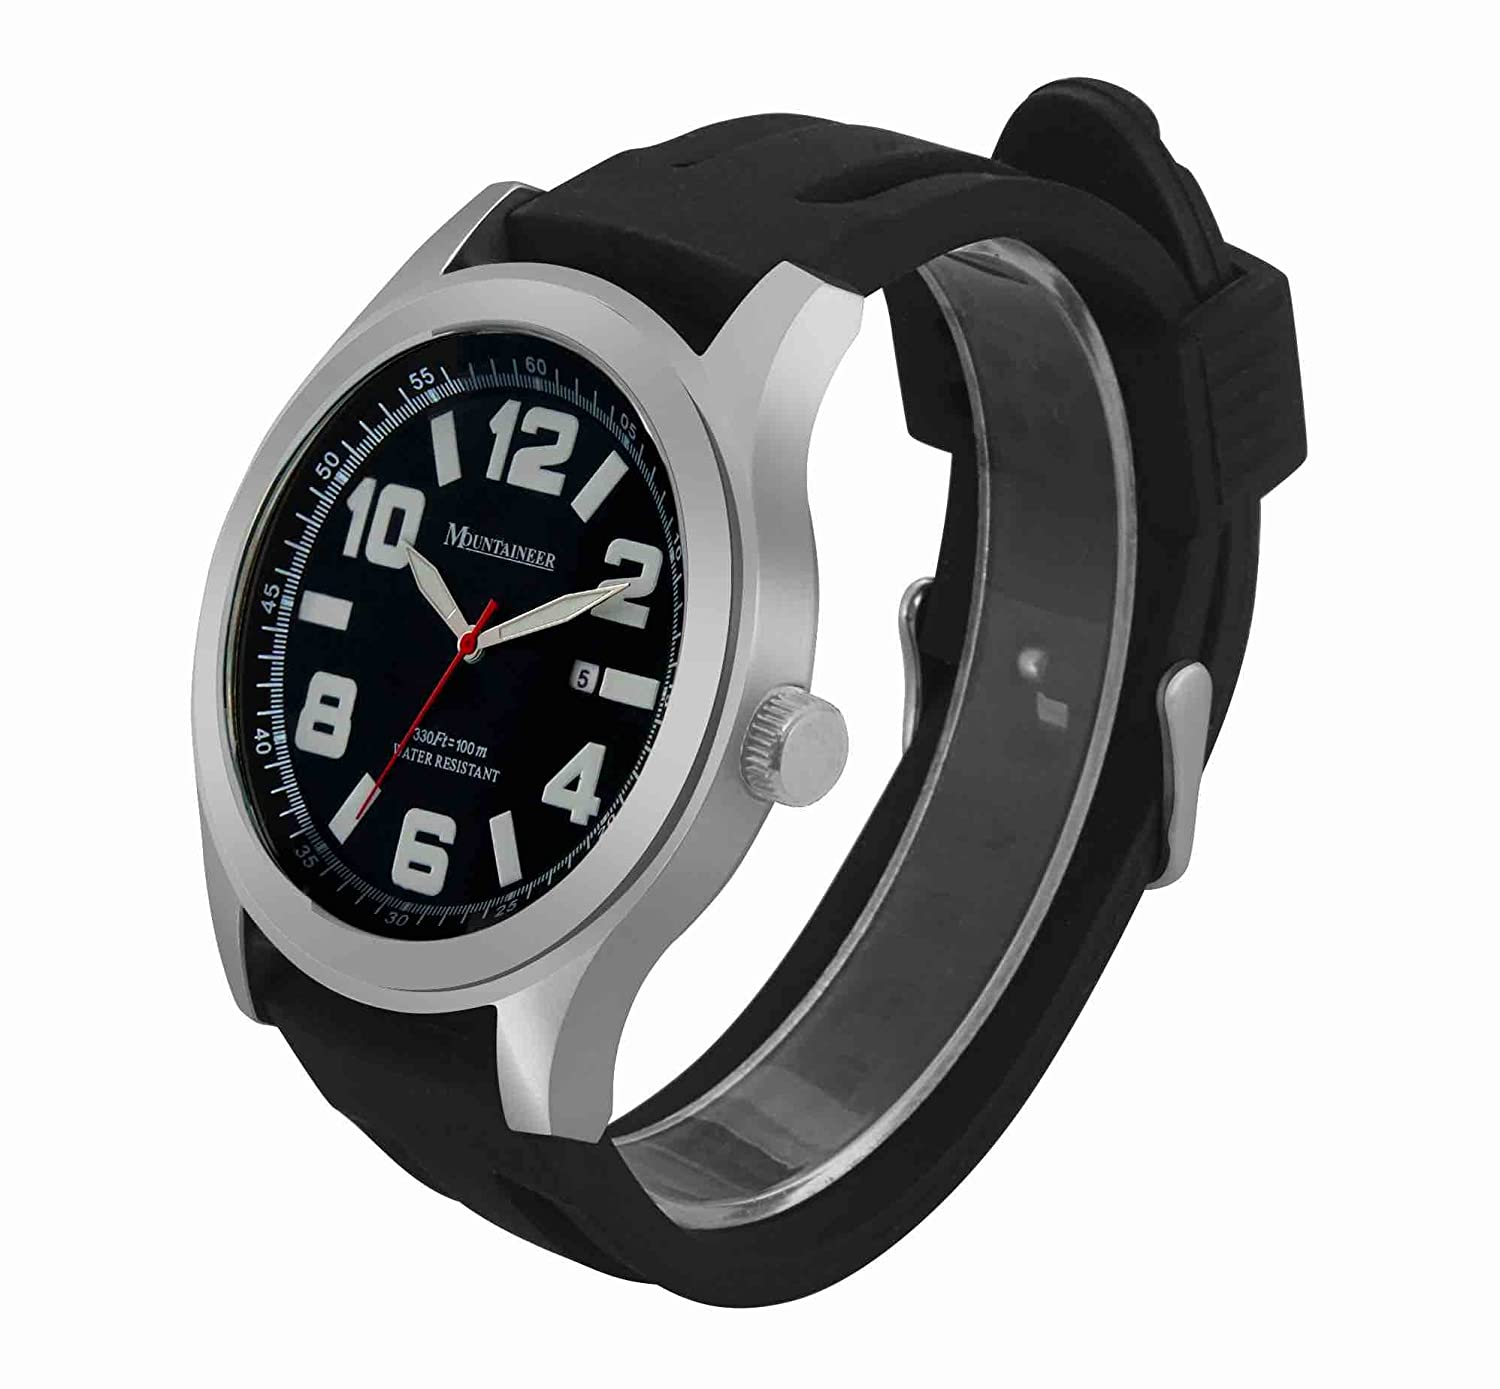 Amazon.com: Mountaineer Mens Sport Watch Black Silicone Rubber Band Big Face Large Oversized Dial Date Reloj MN8040: Watches